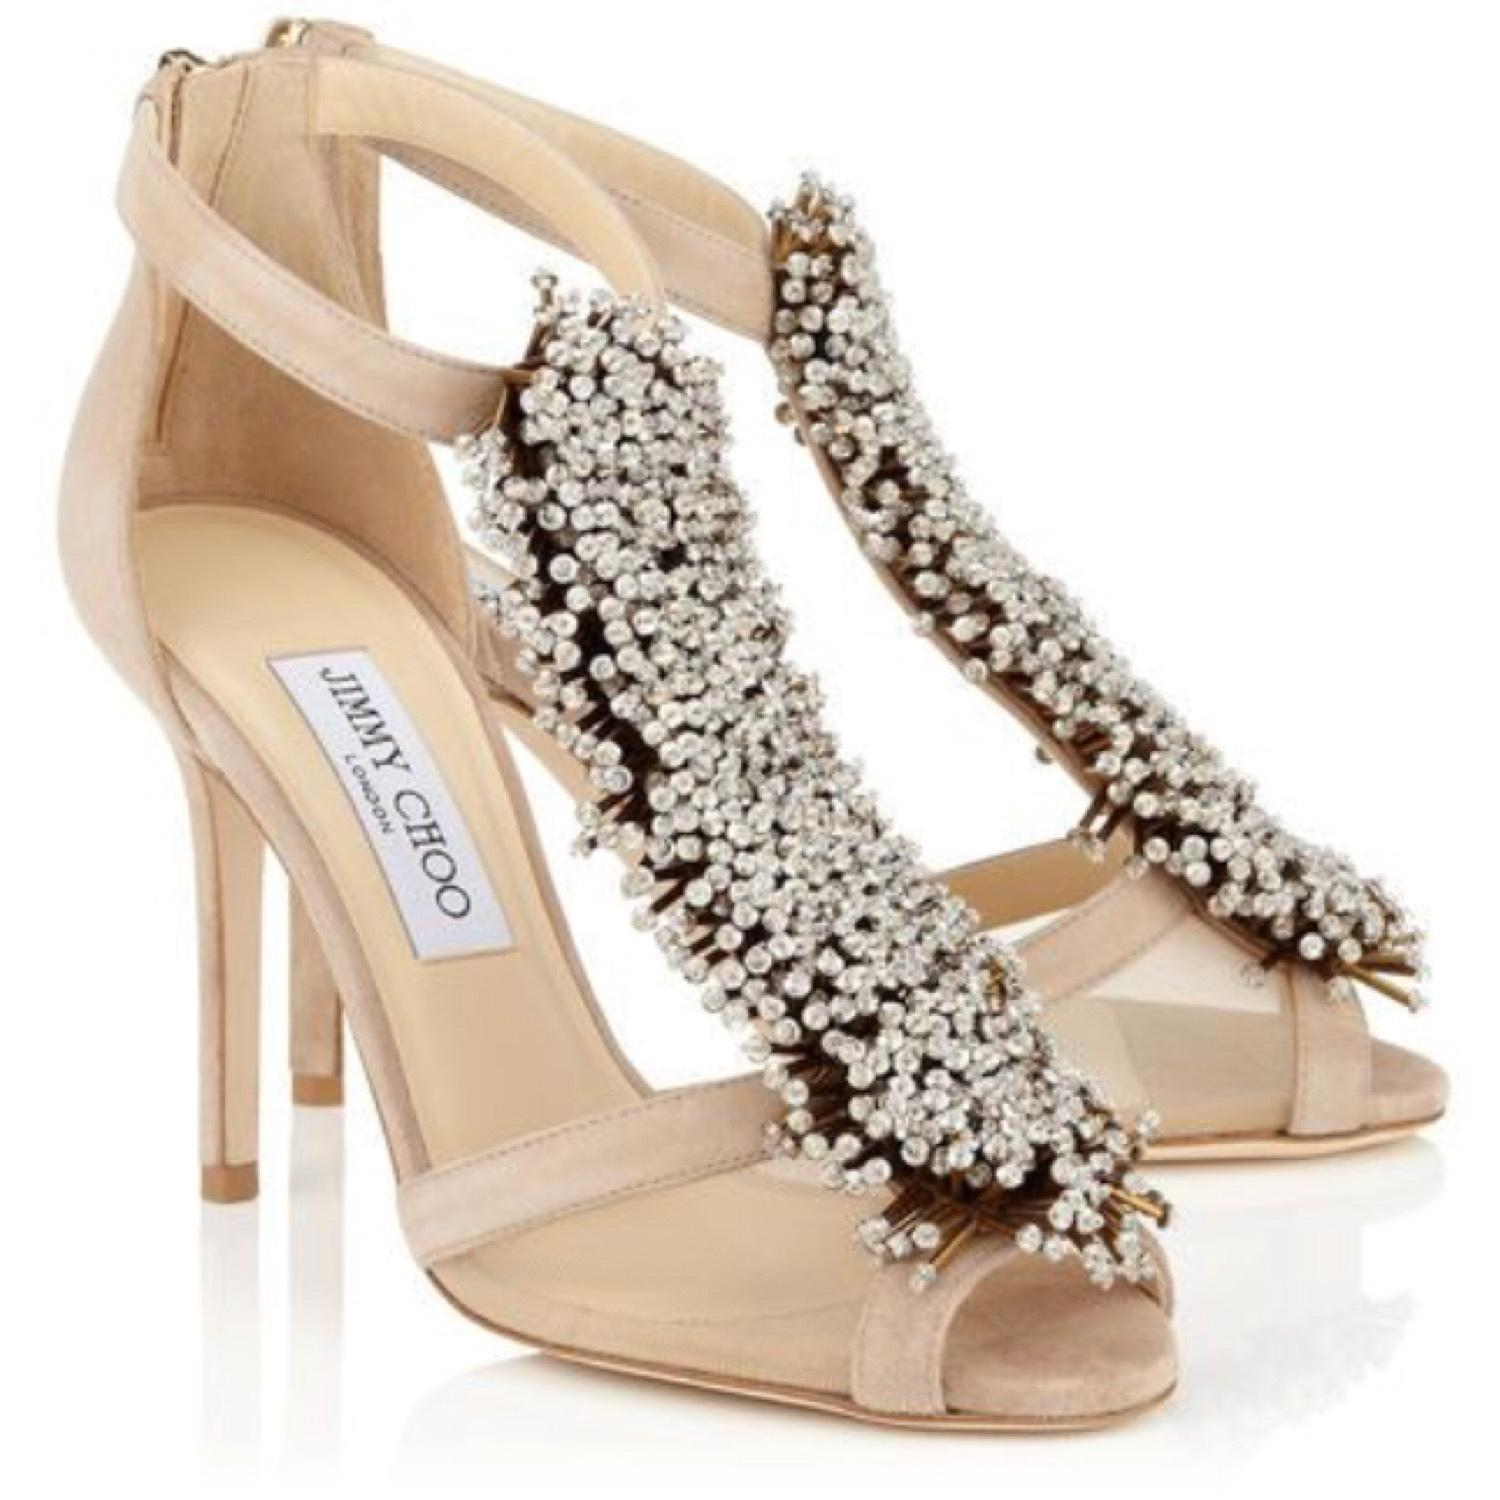 Jimmy Choo Nude Silver Suede Crystal Embellished Jeweled Beaded Sandals Pumps Size EU 36.5 (Approx. US 6.5) Regular (M, B)